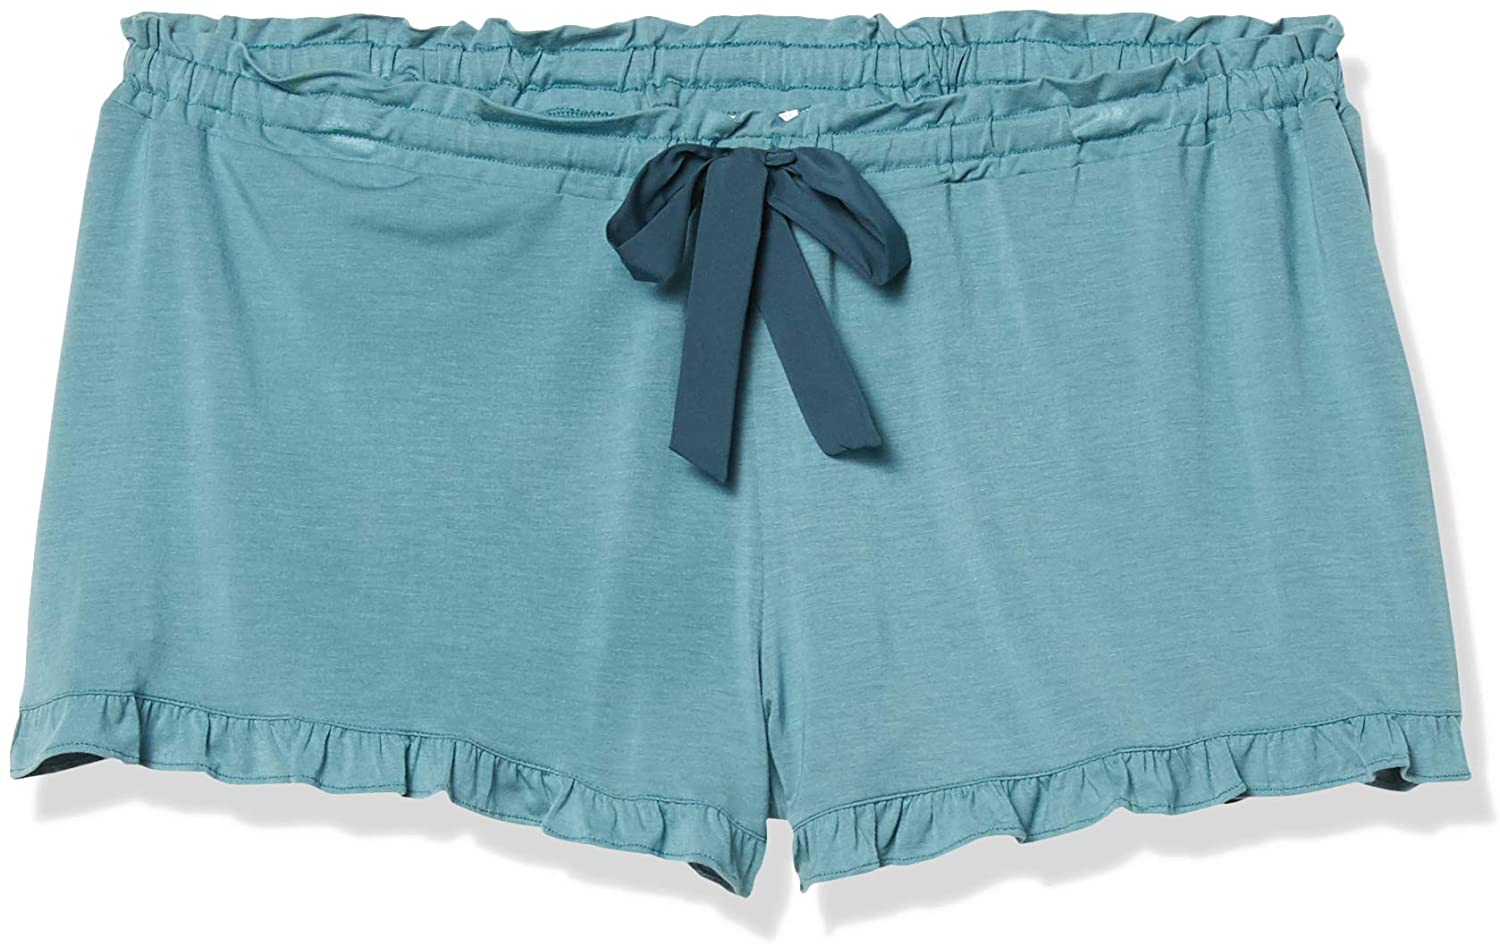 Josie By Josie Natori Women's Short